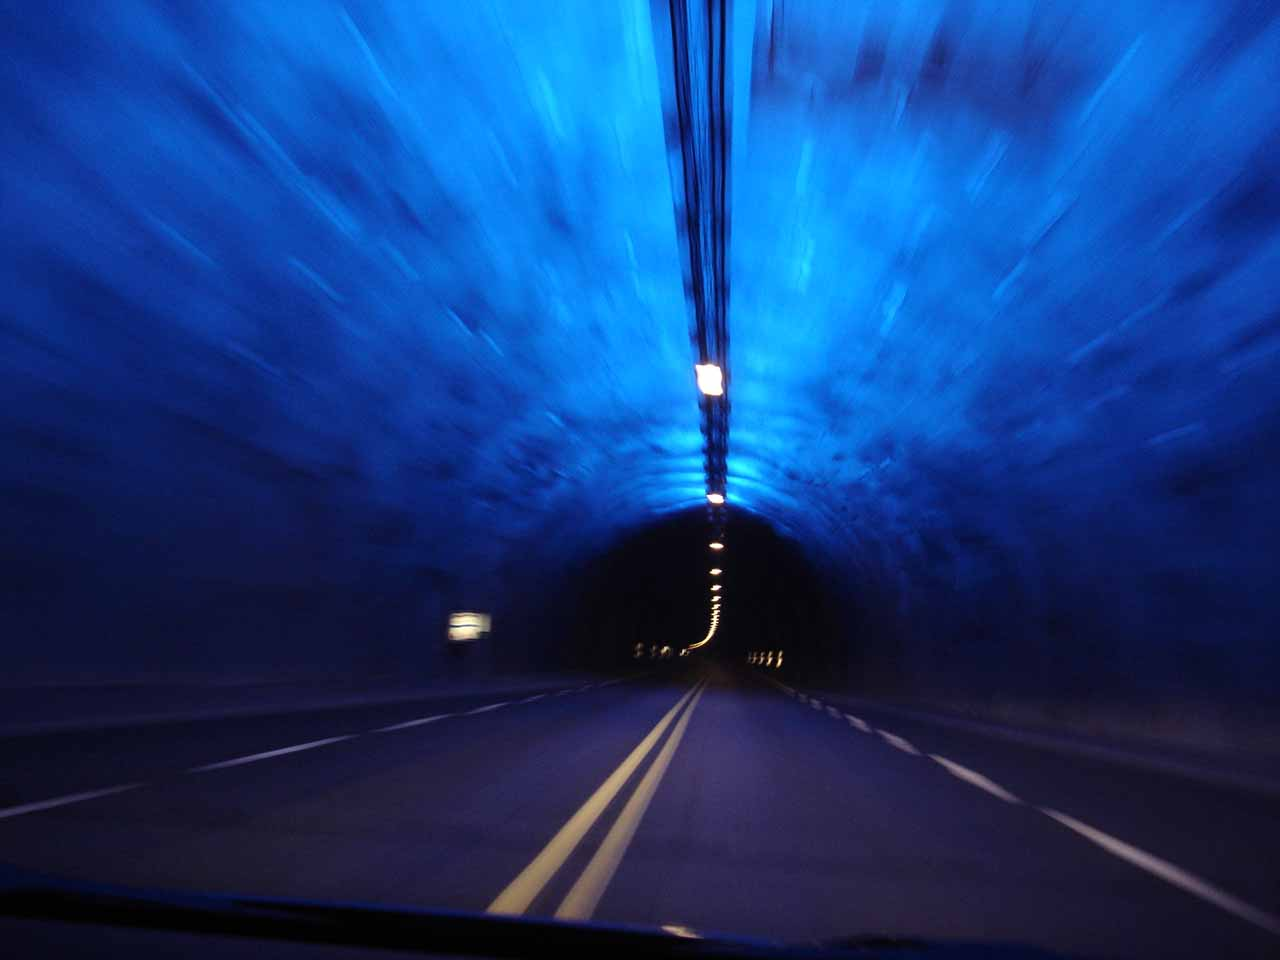 We used the small town of Lærdal as the base for our out-and-back detour to Hemsedal. Shown here is the impressive 24km road tunnel between Flåm and Lærdal